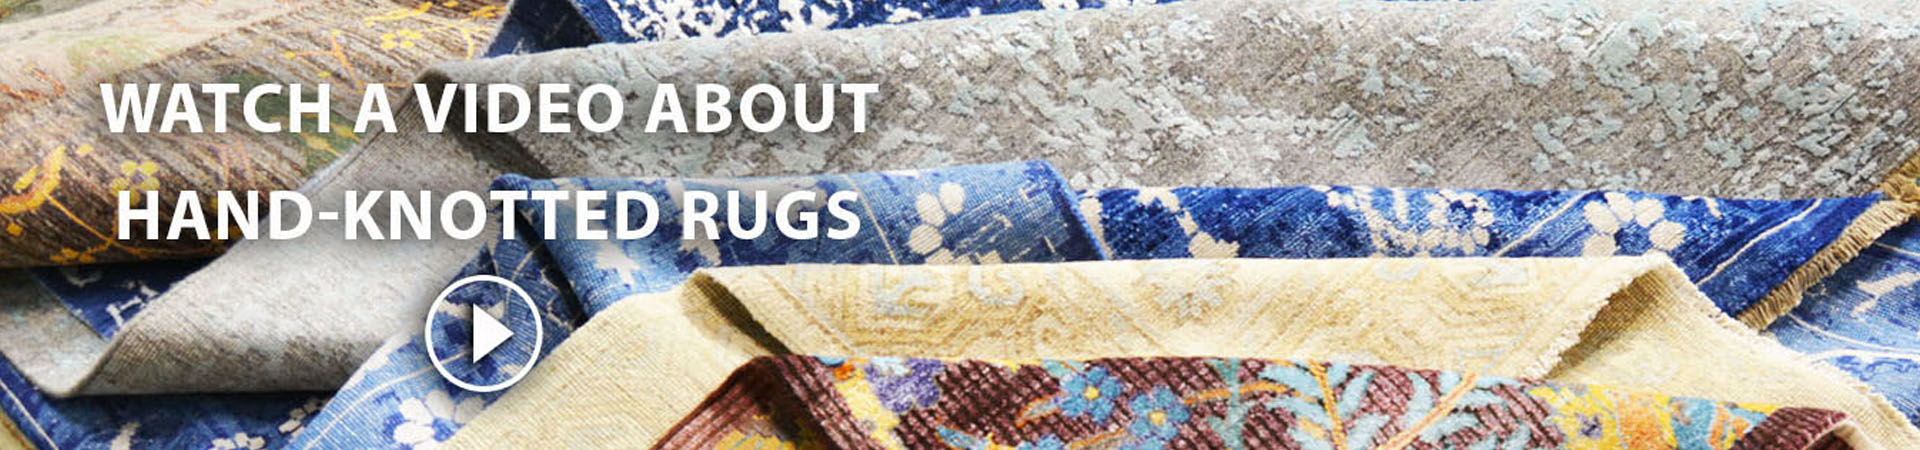 THE STORY OF HAND KNOTTED RUGS